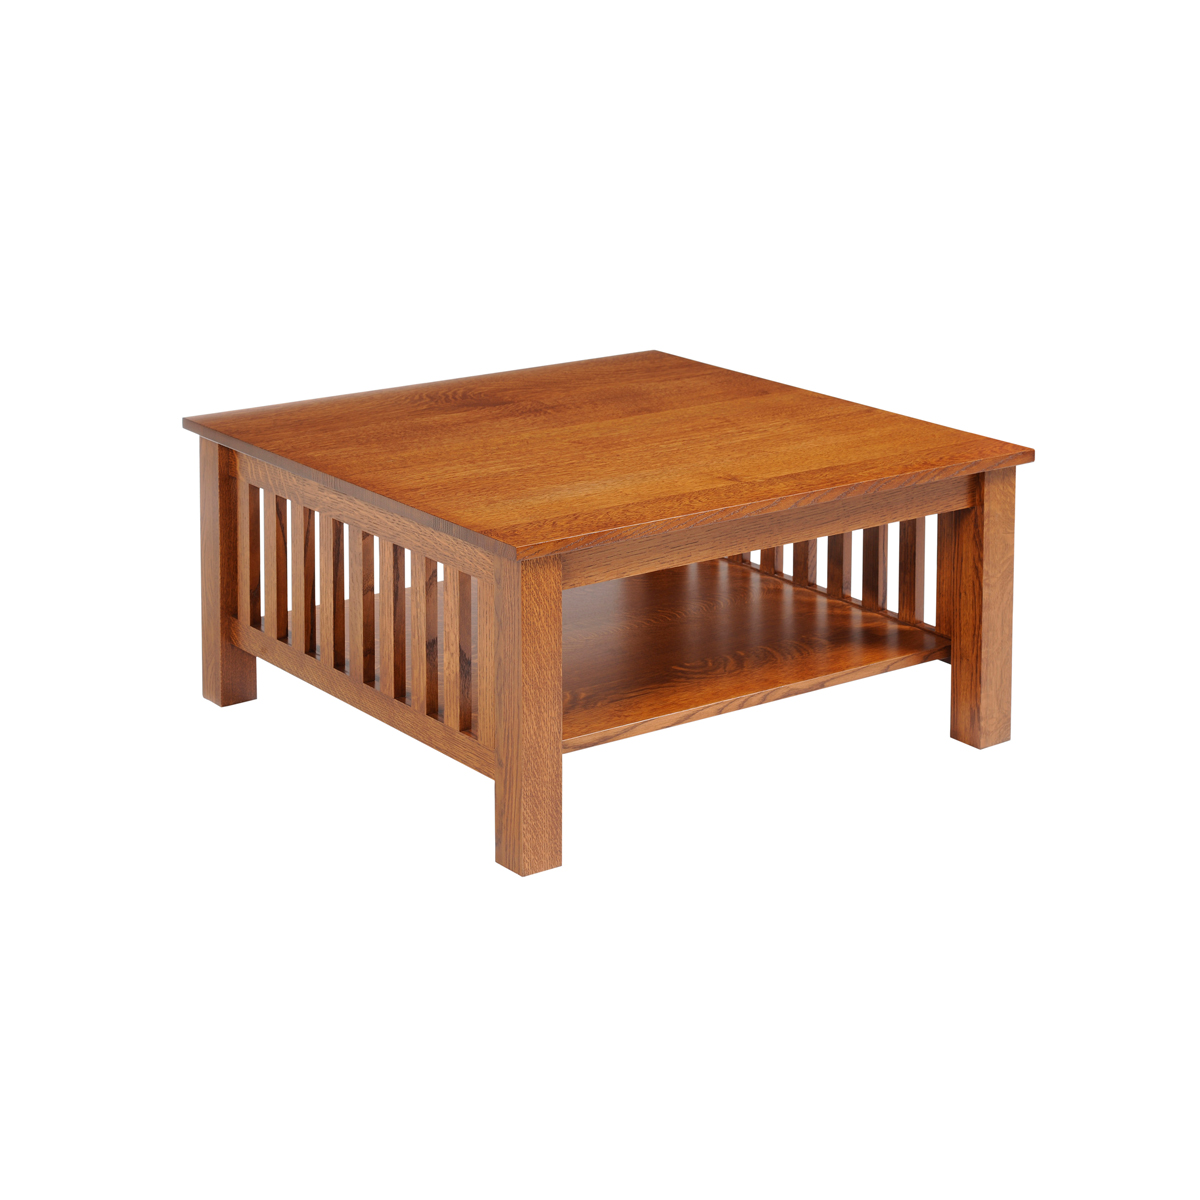 mission coffee table square specializing in custom american made furniture since 1969